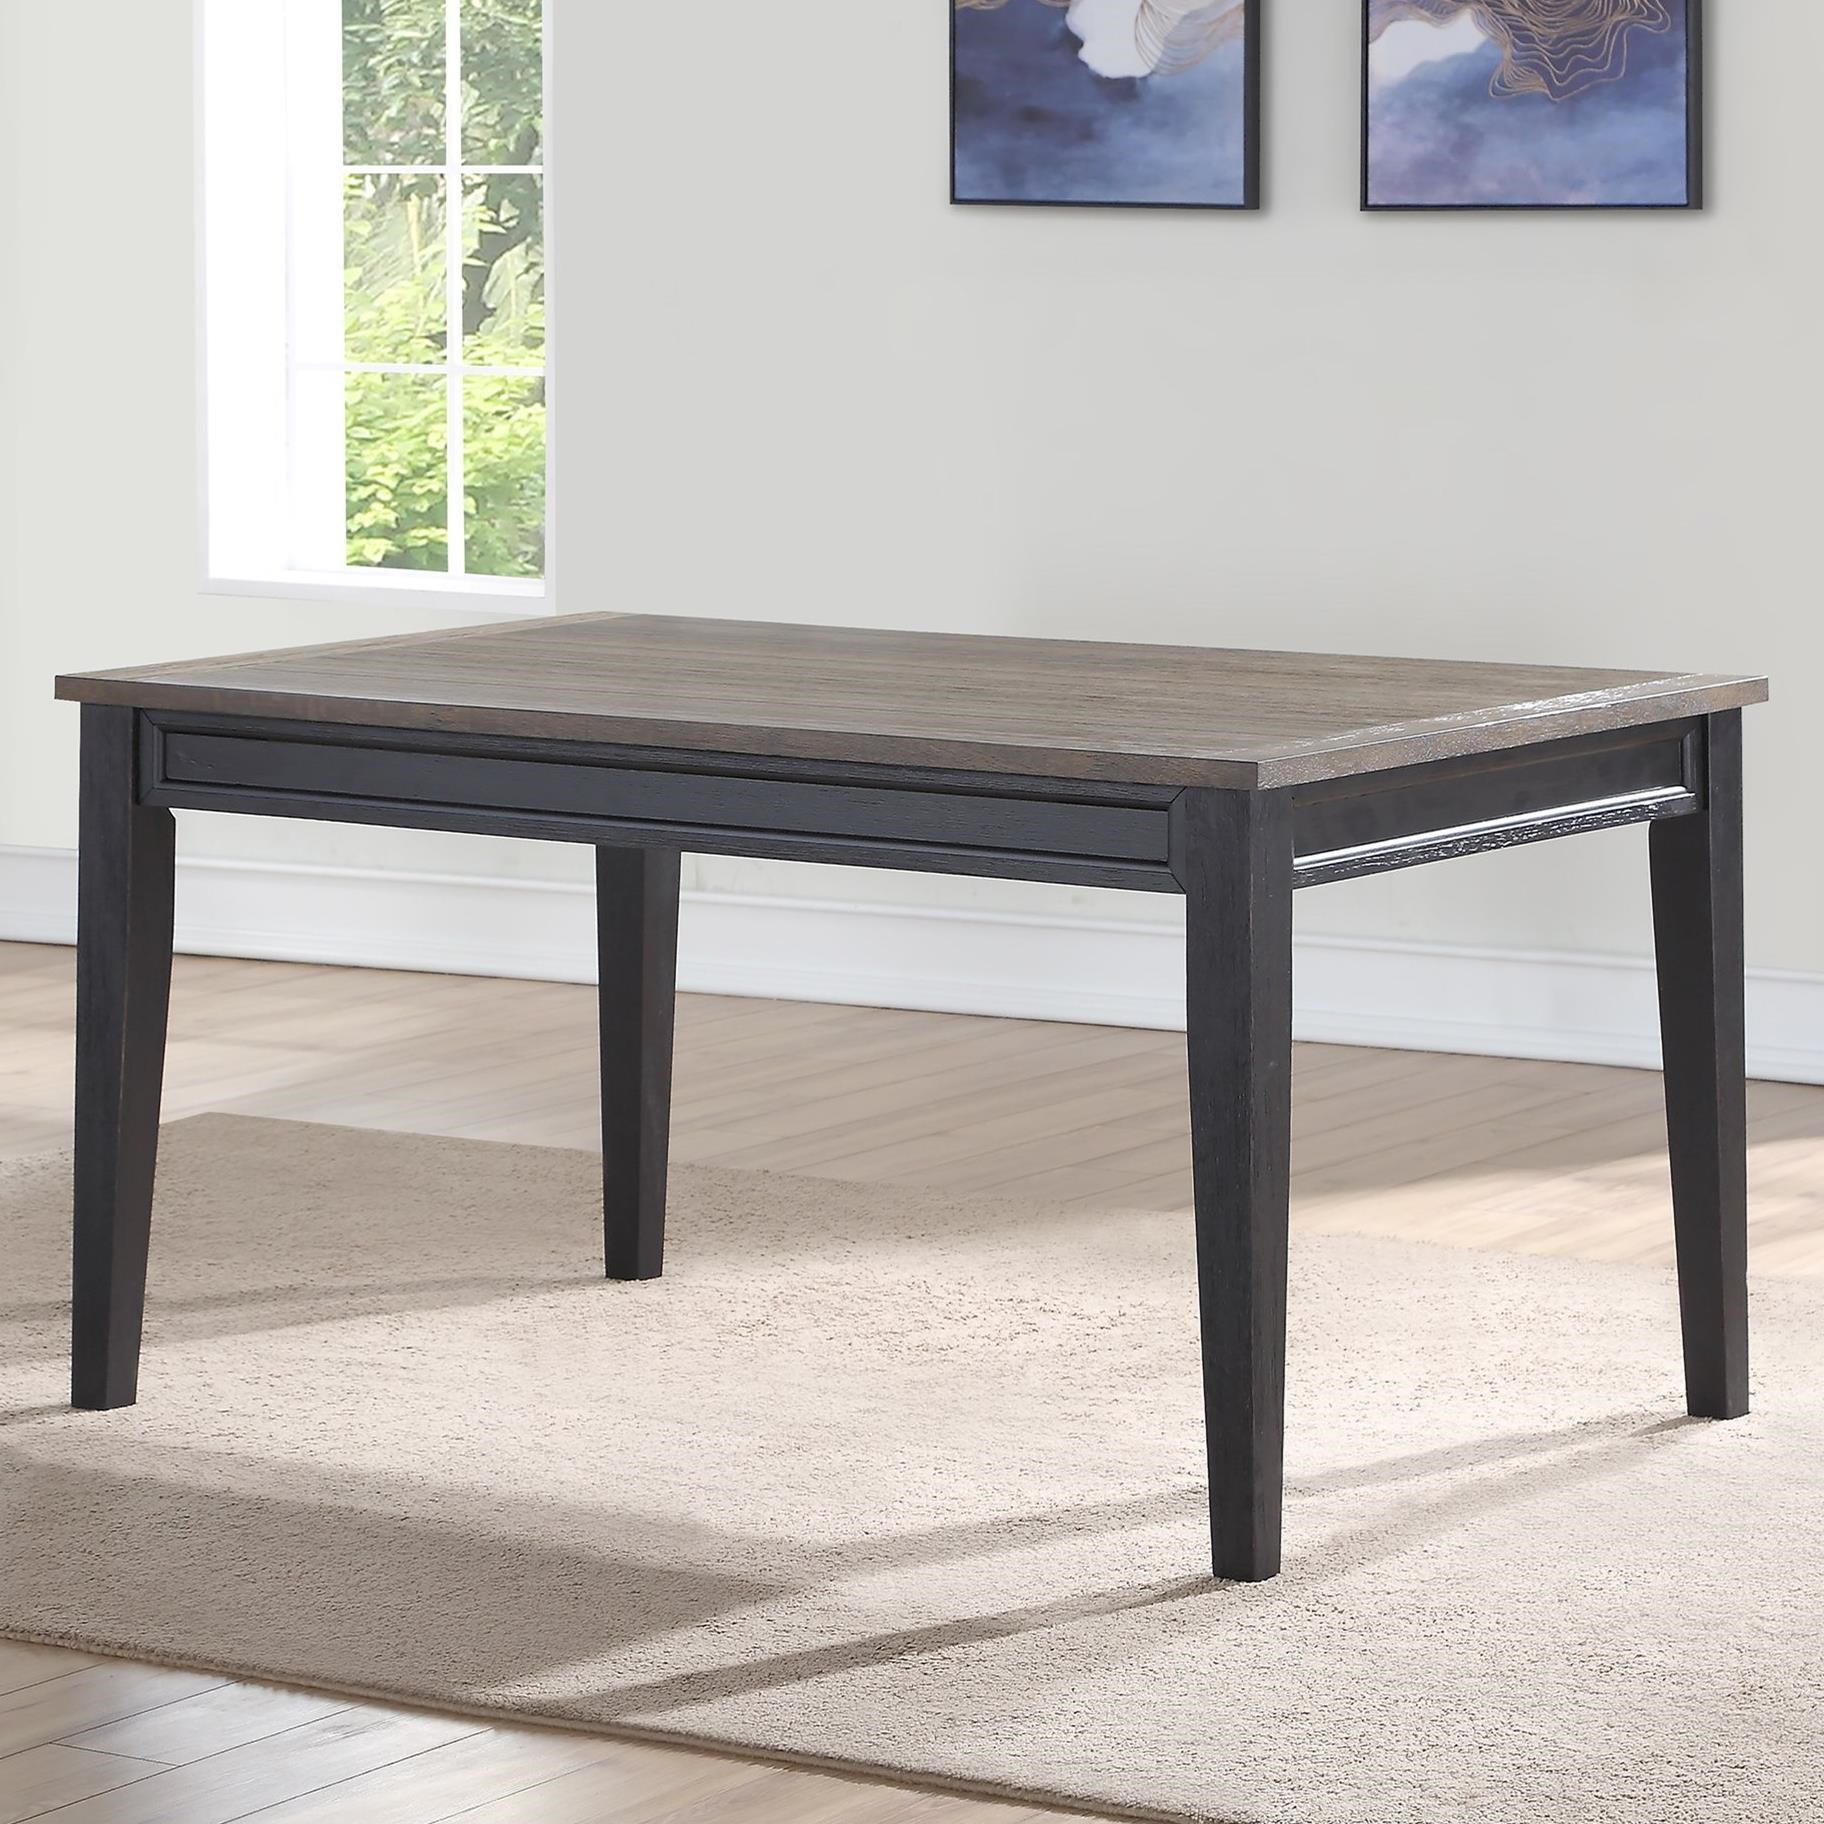 Raven Dining Table by Steve Silver at Northeast Factory Direct